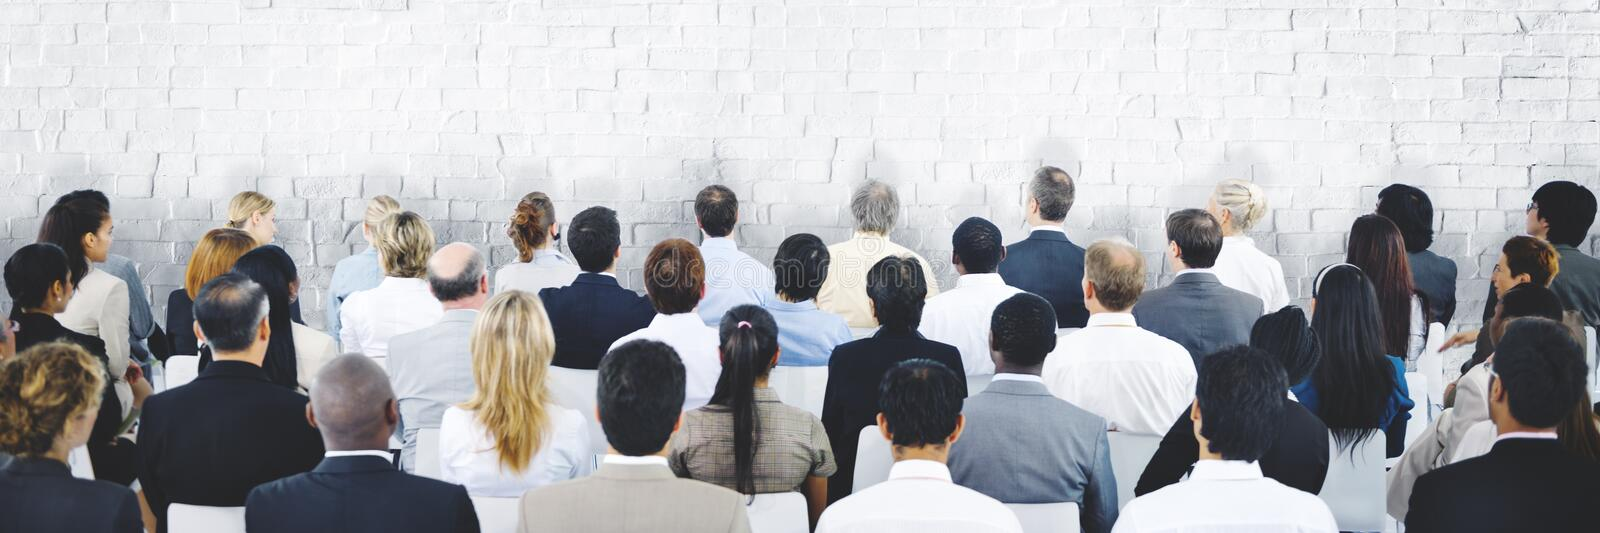 Business People Seminar Meeting Conference Corporate Concept royalty free stock photos